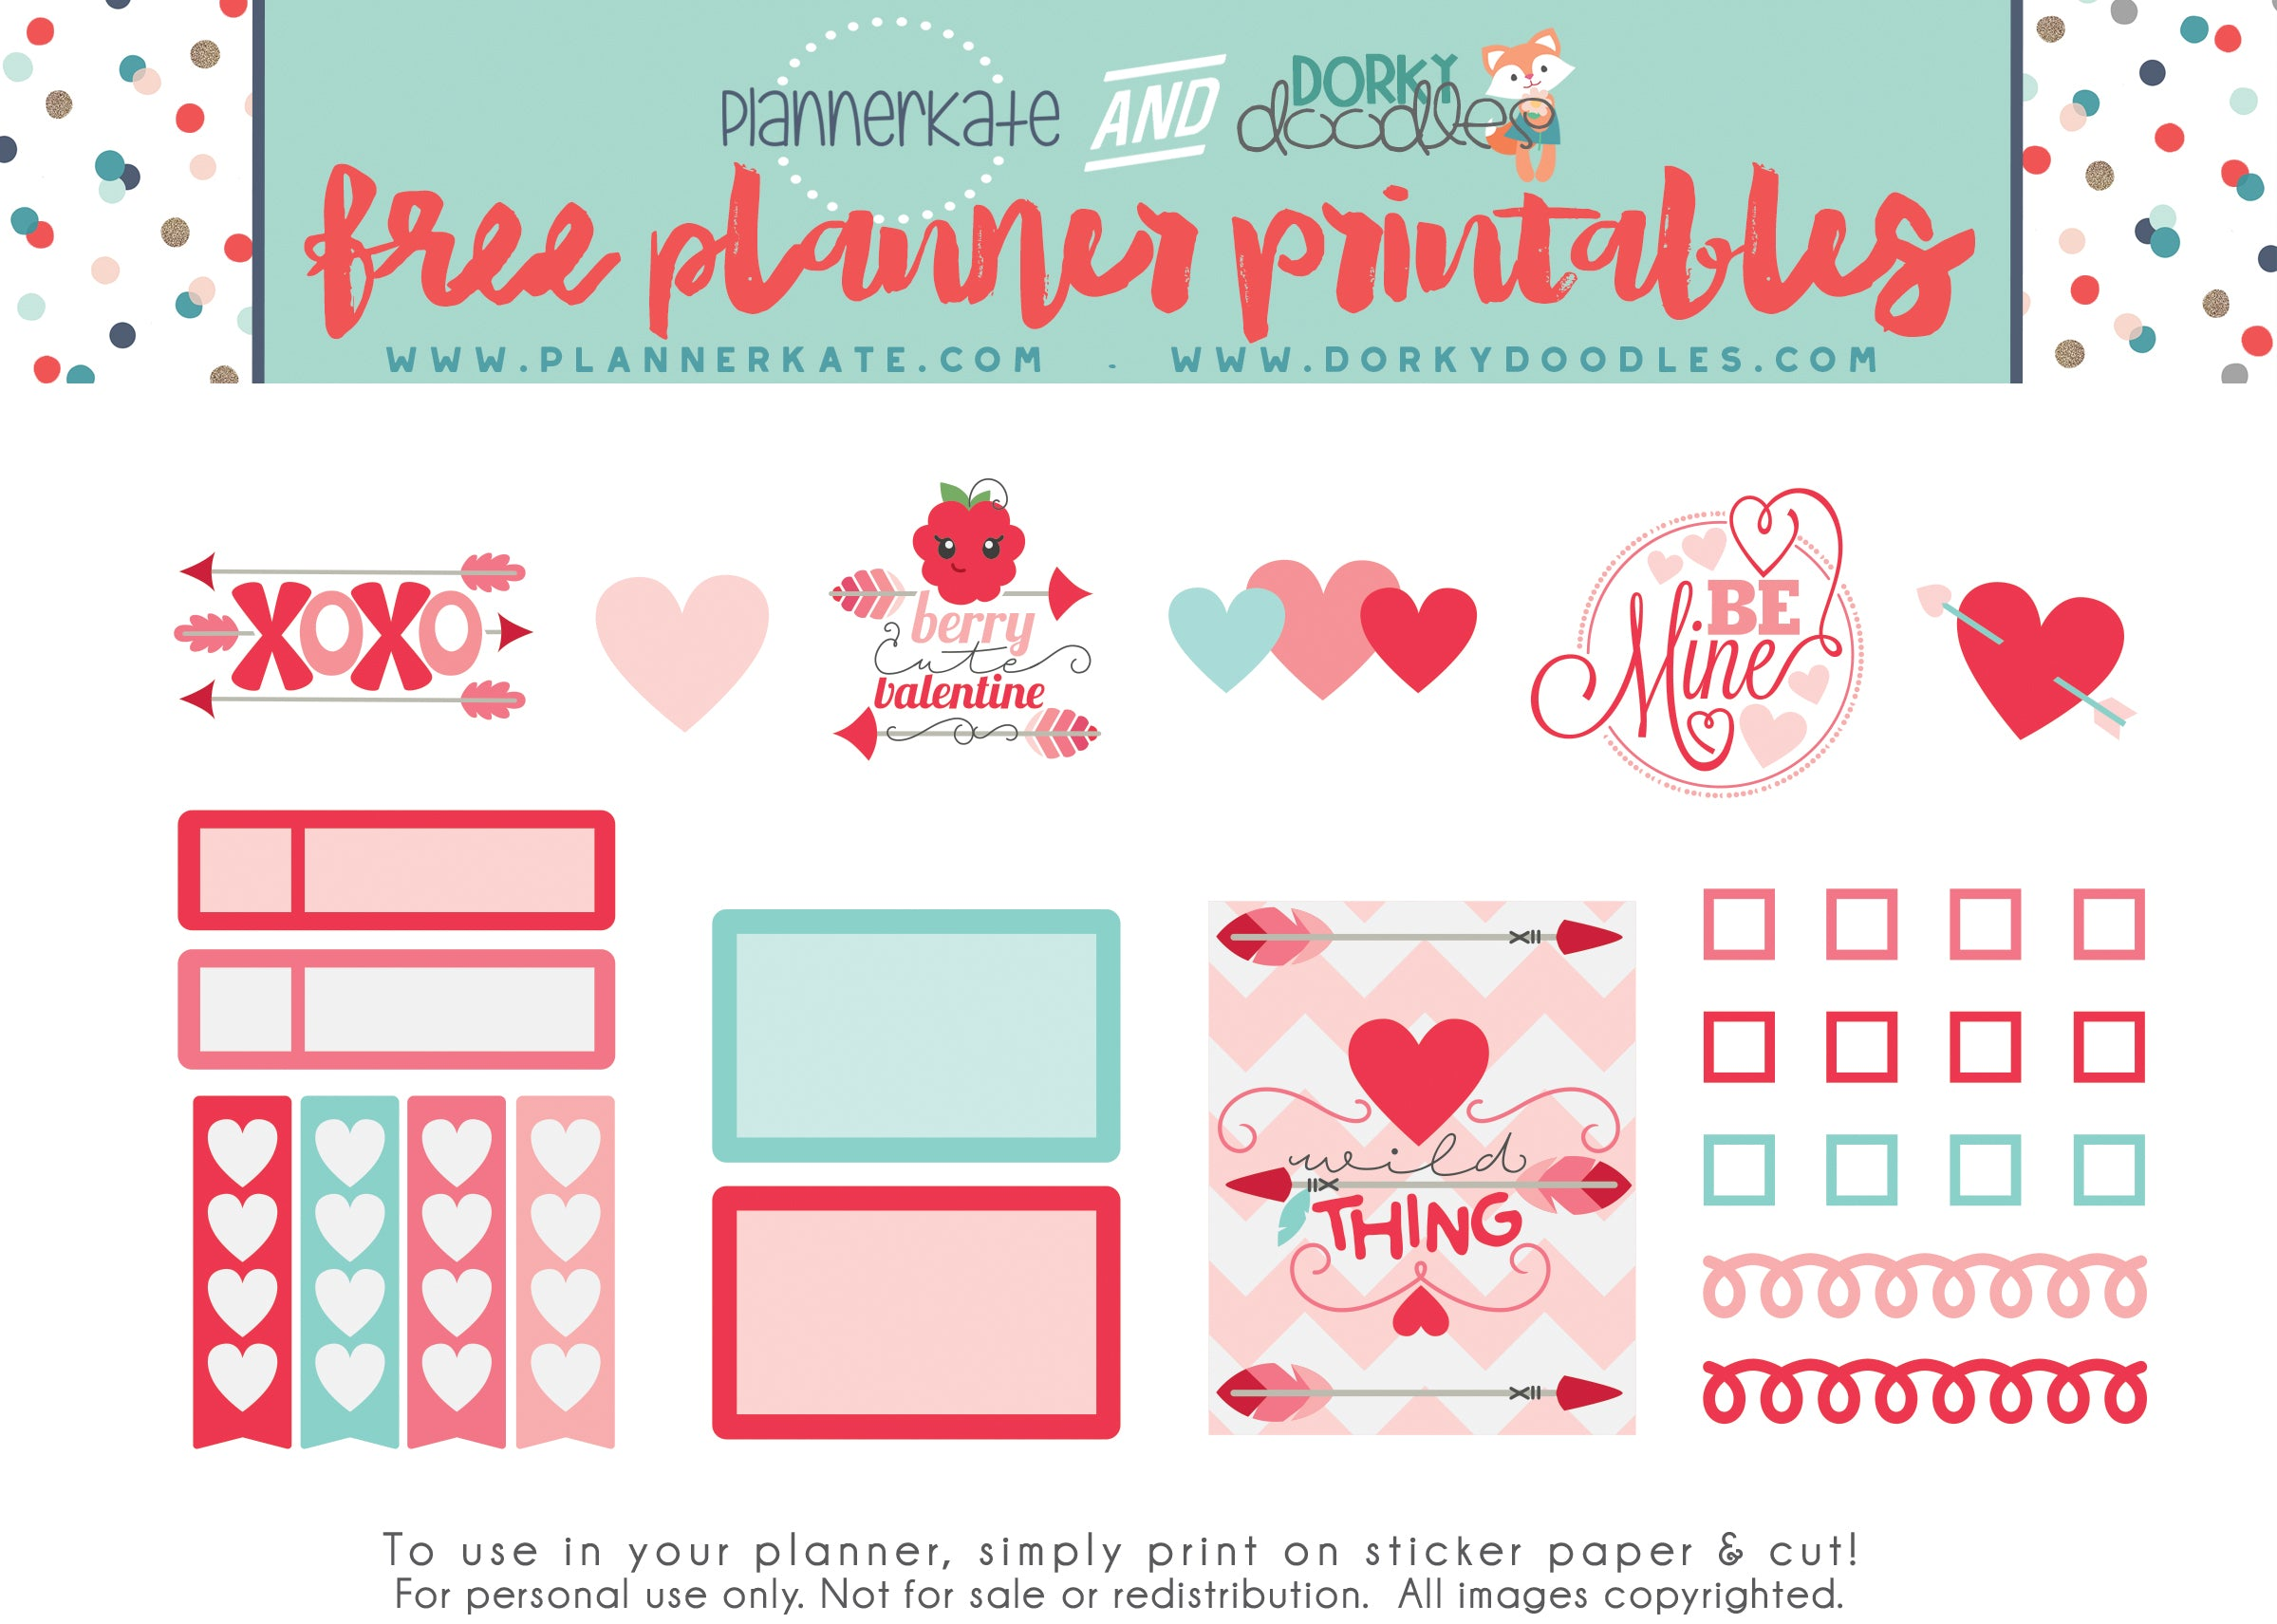 photograph regarding Valentine Stickers Printable titled Lovable Valentine Planner Sticker Freebie Dorky Doodles